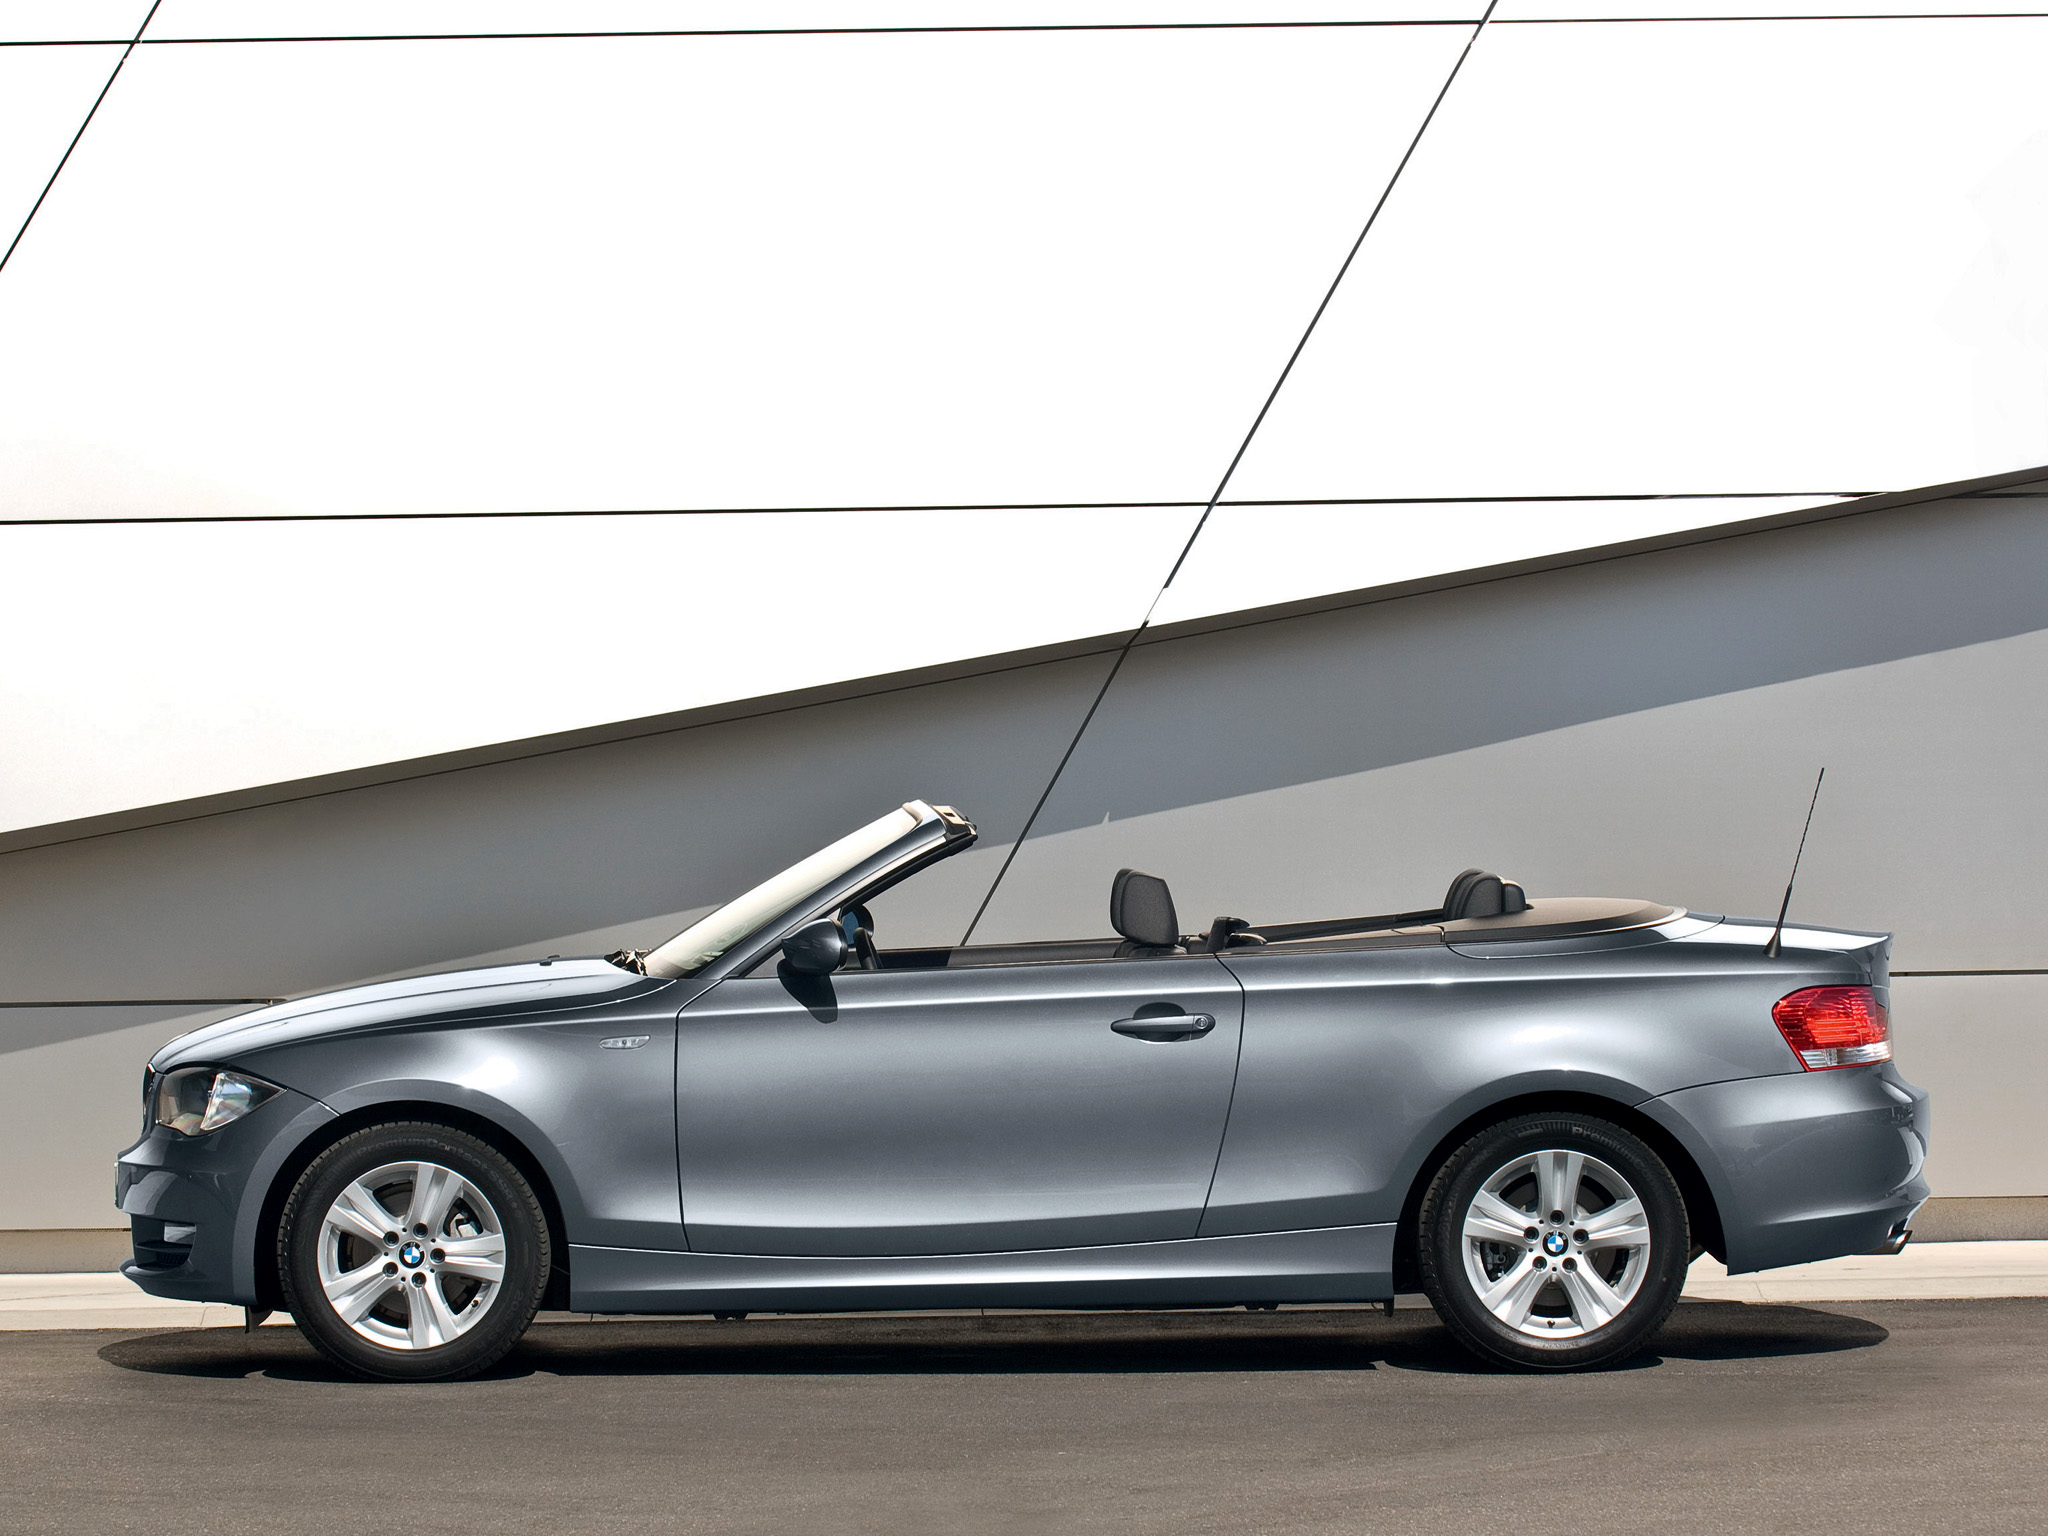 2019 BMW 135i Convertible photo - 4